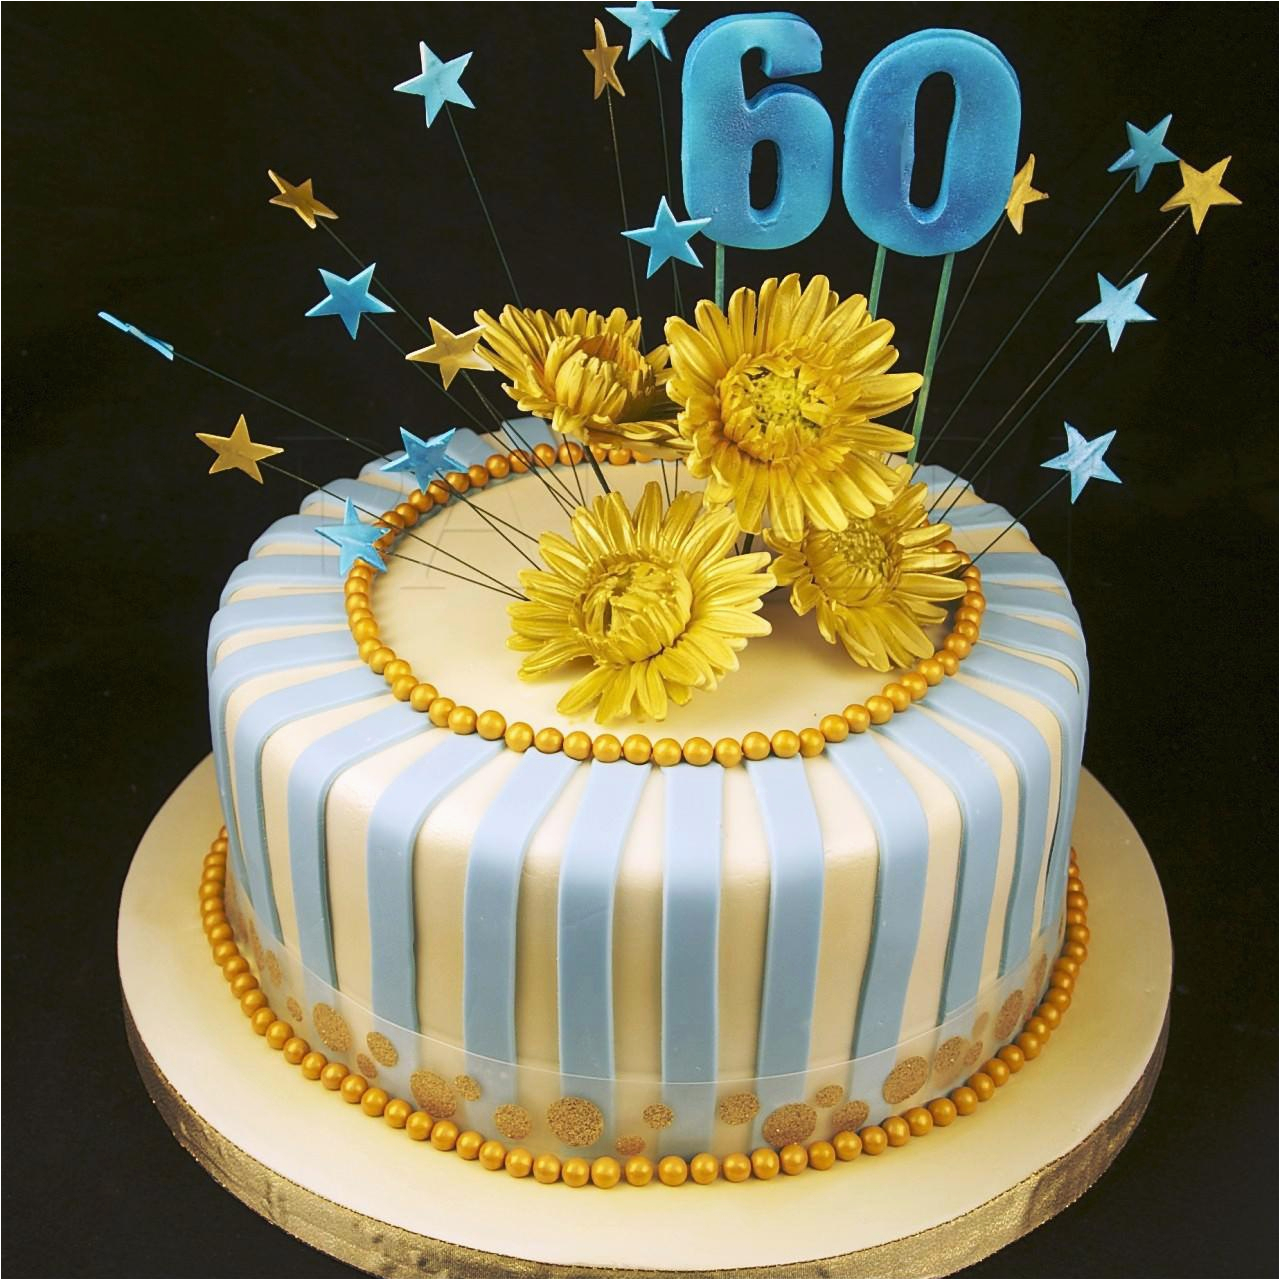 60th Birthday Party Decorations For Men Decoration In Simple Way Criolla Brithday